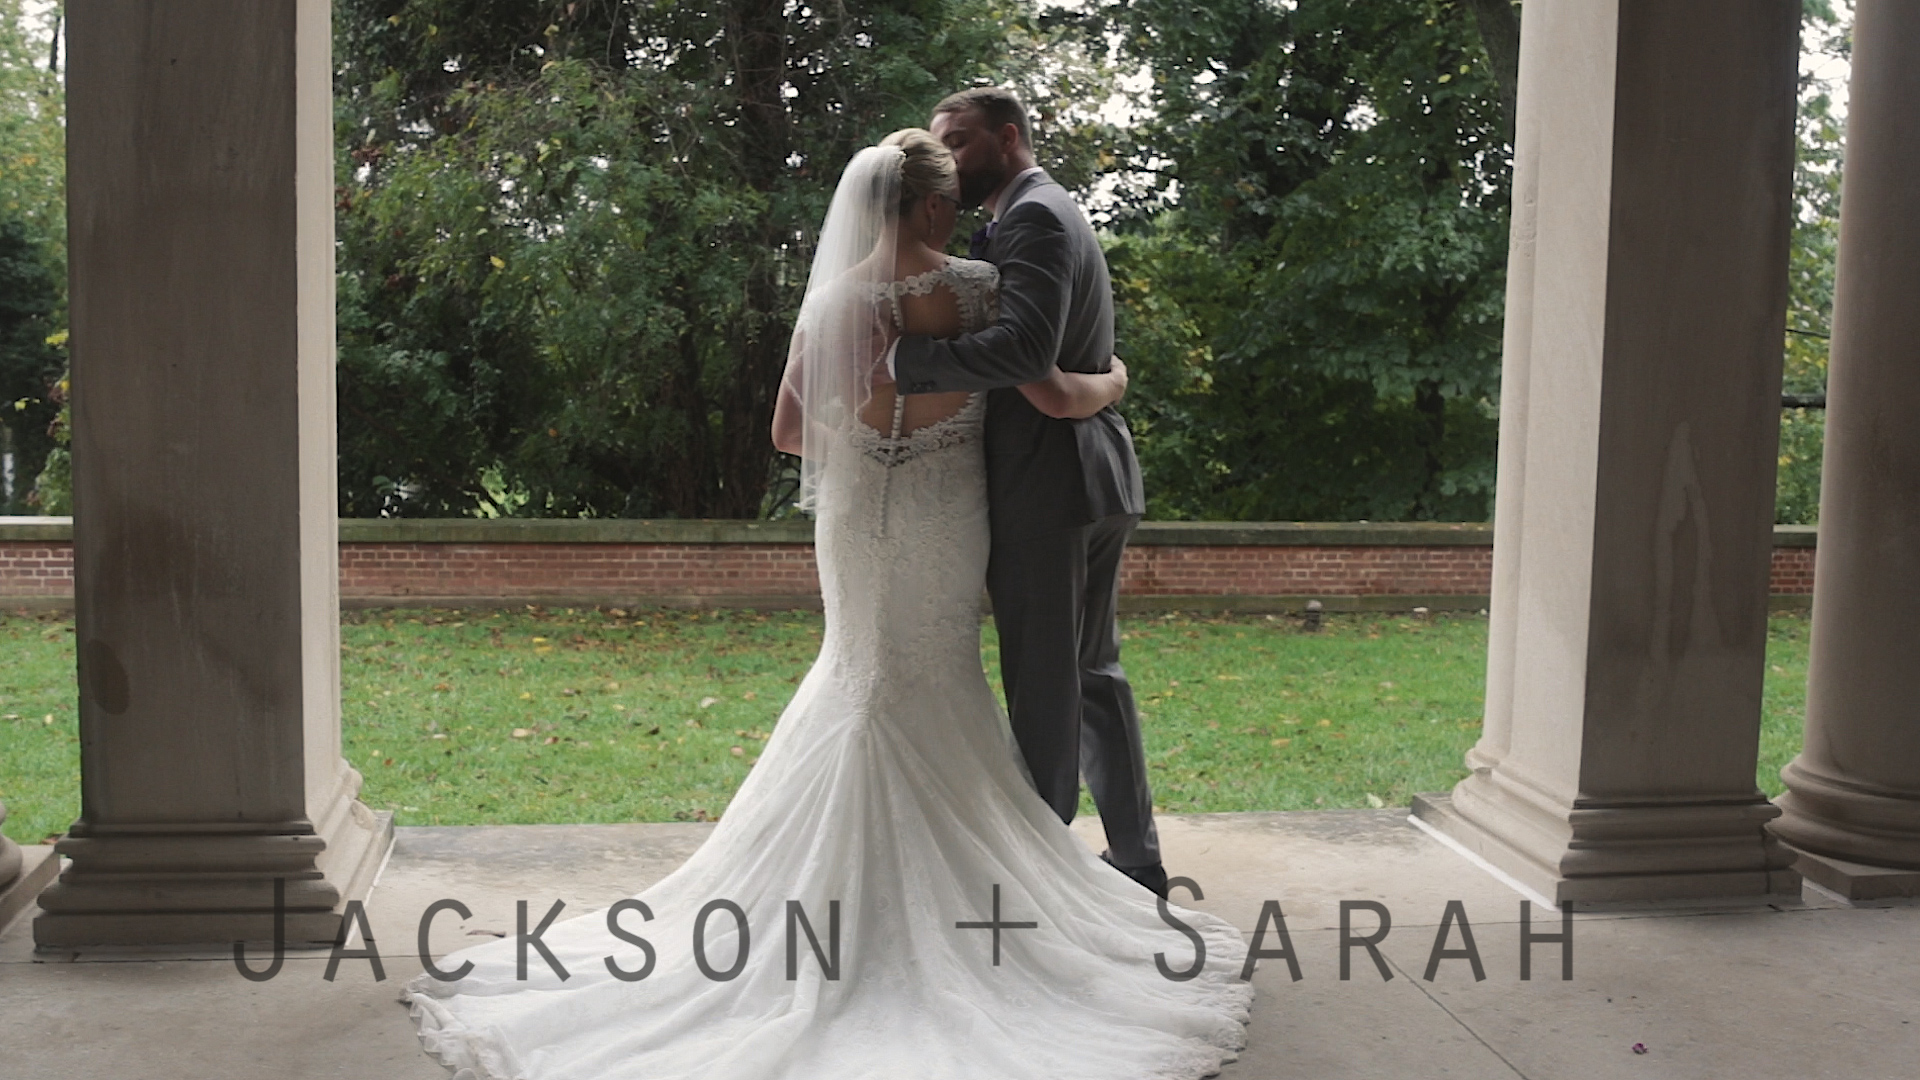 Jackson + Sarah | Louisville, Kentucky | Garden Court at Louisville Seminary